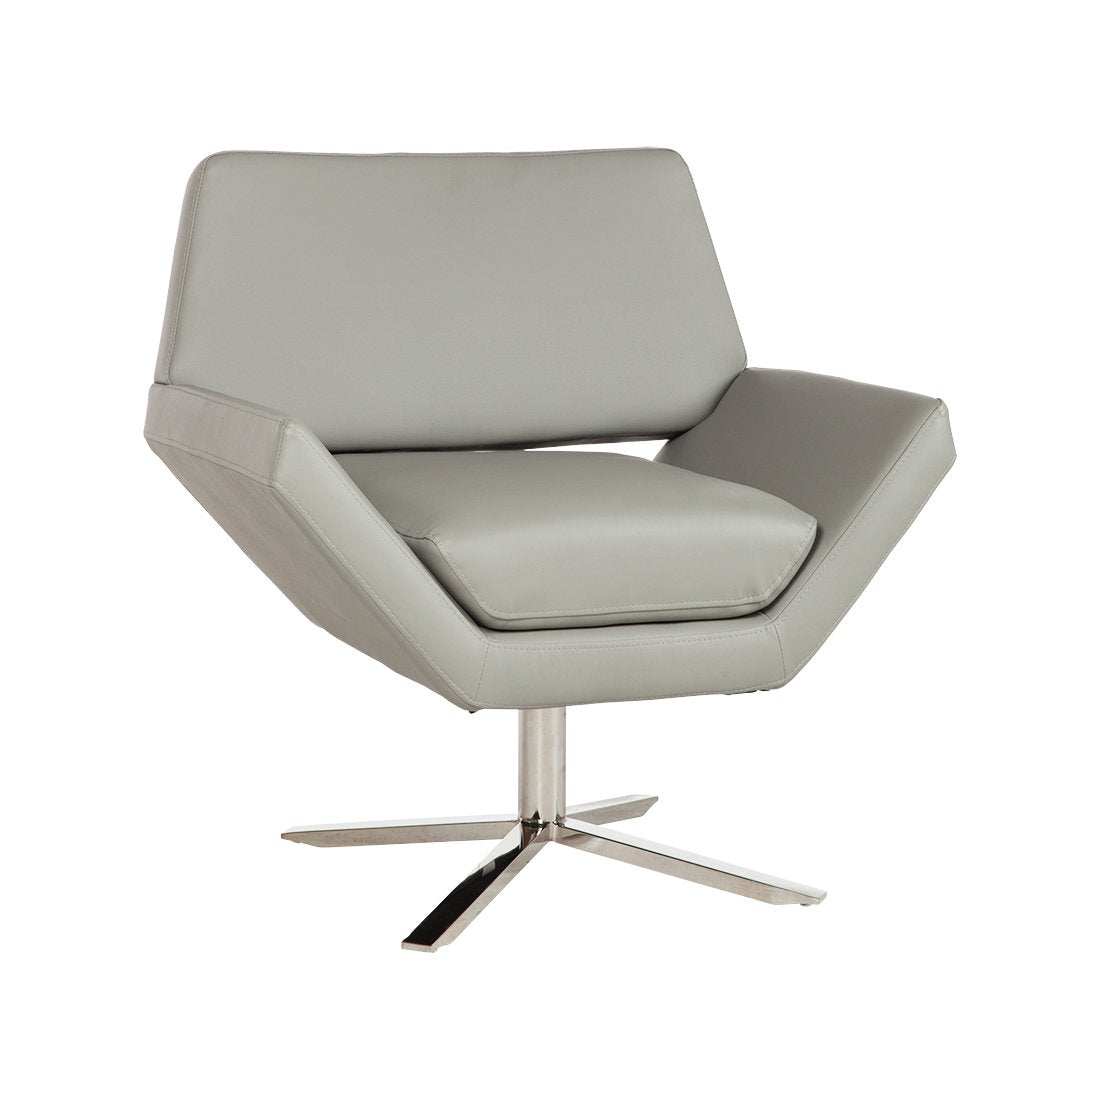 [FV255LGREY] Eirian Lounge Chair